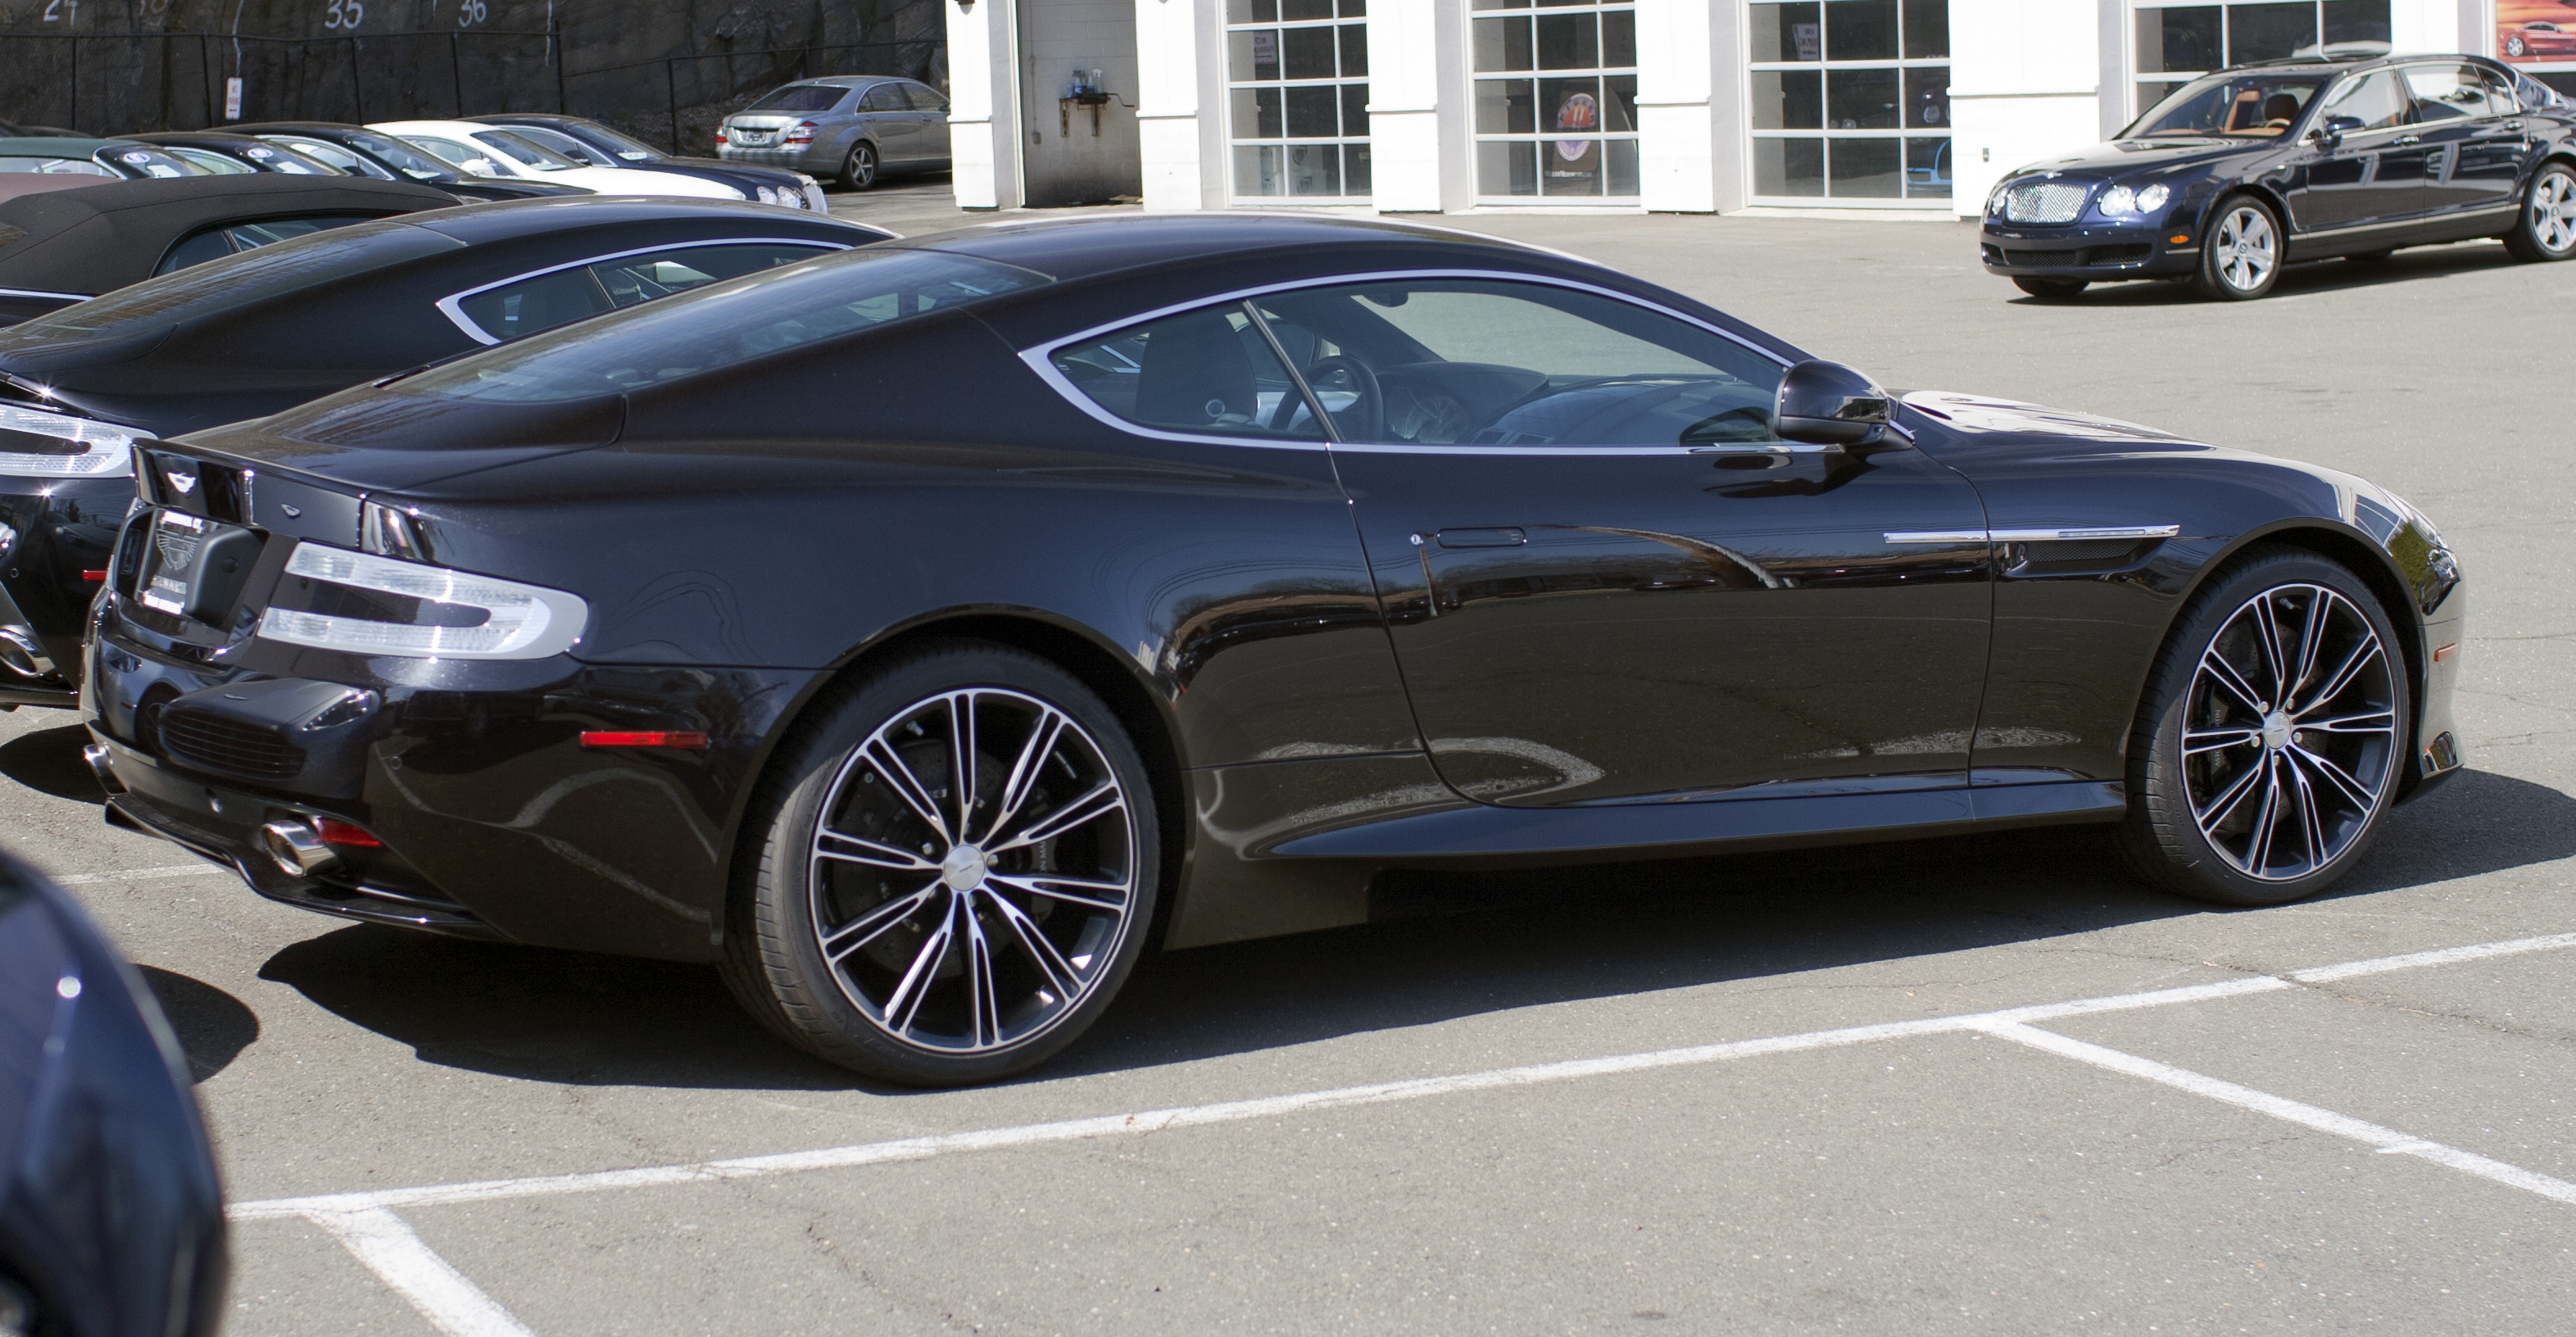 file 2012 aston martin virage coup onyx wikimedia commons. Cars Review. Best American Auto & Cars Review